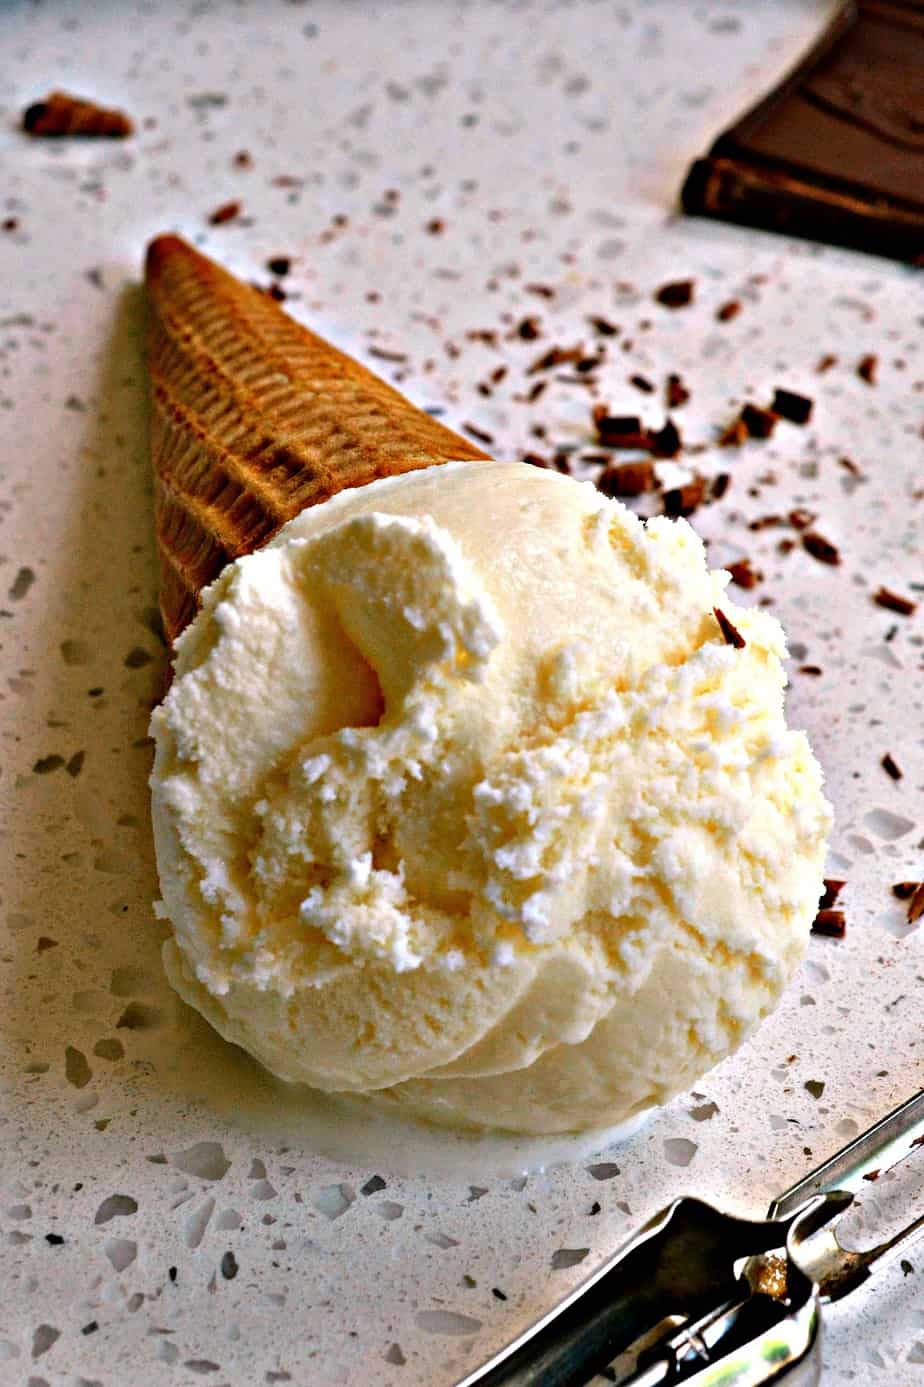 This smooth and creamy rich vanilla ice cream takes less than five minutes to prepare for the ice cream maker.